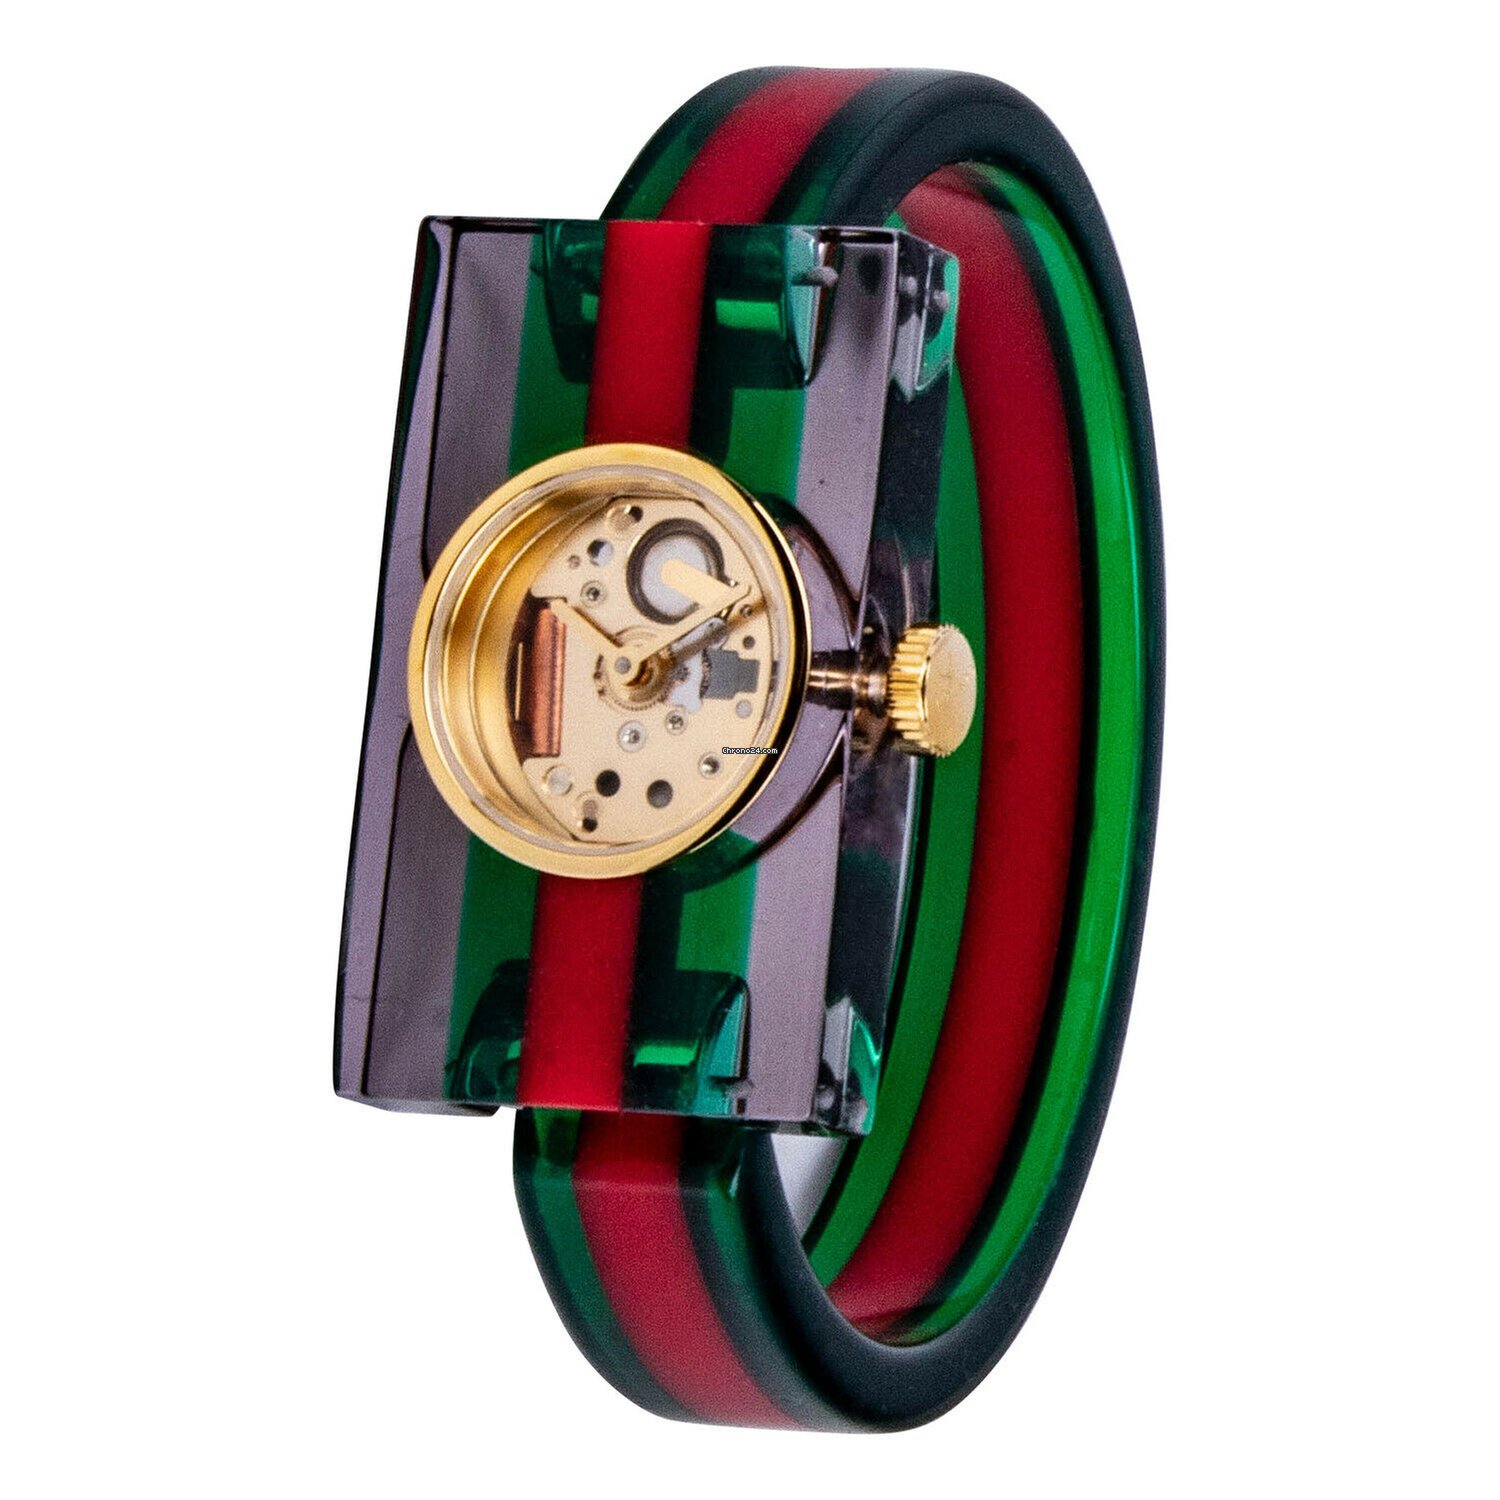 59d7de6f9f7 Gucci YA143503 Vintage Web Plexiglas Skeleton Dial Green Red... for  442  for sale from a Seller on Chrono24